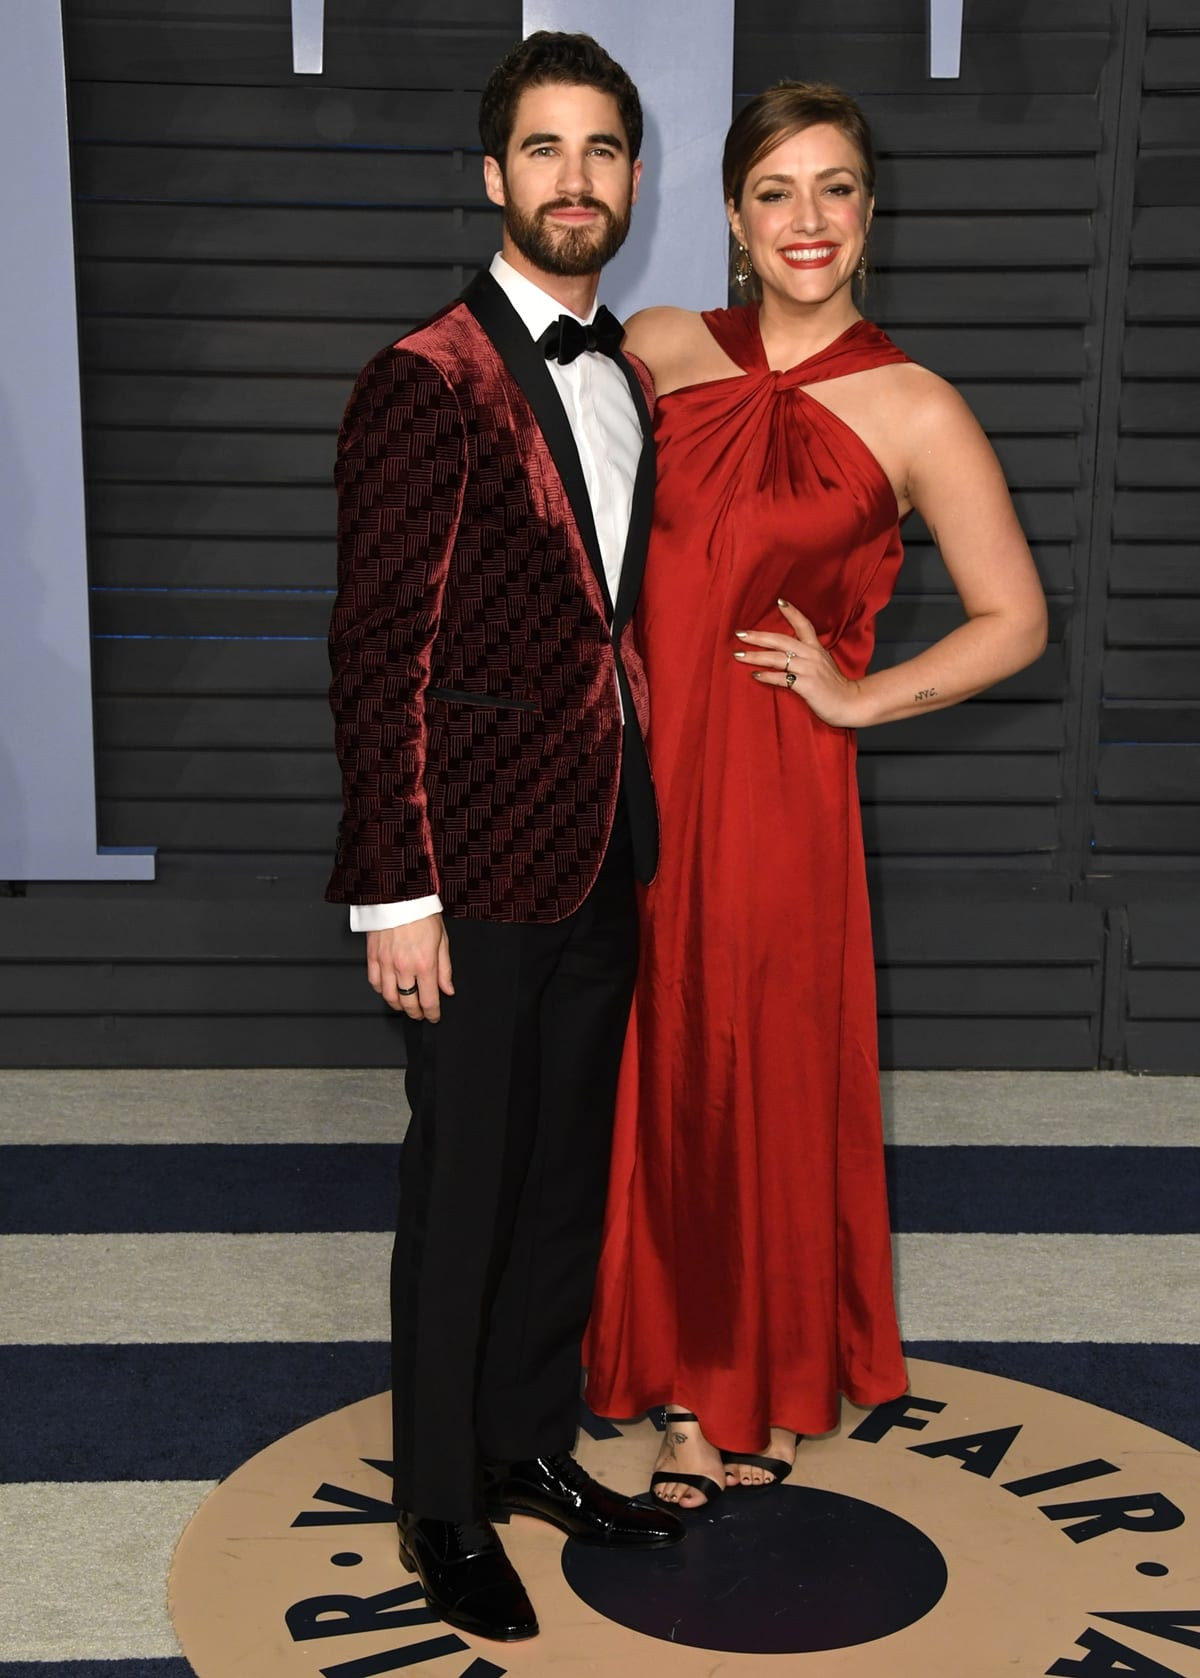 Wearing an Armani suit and Christian Louboutin shoes, Darren Criss and Mia Swier attended the 2018 Elton John AIDS Foundation's Academy Awards Viewing Party